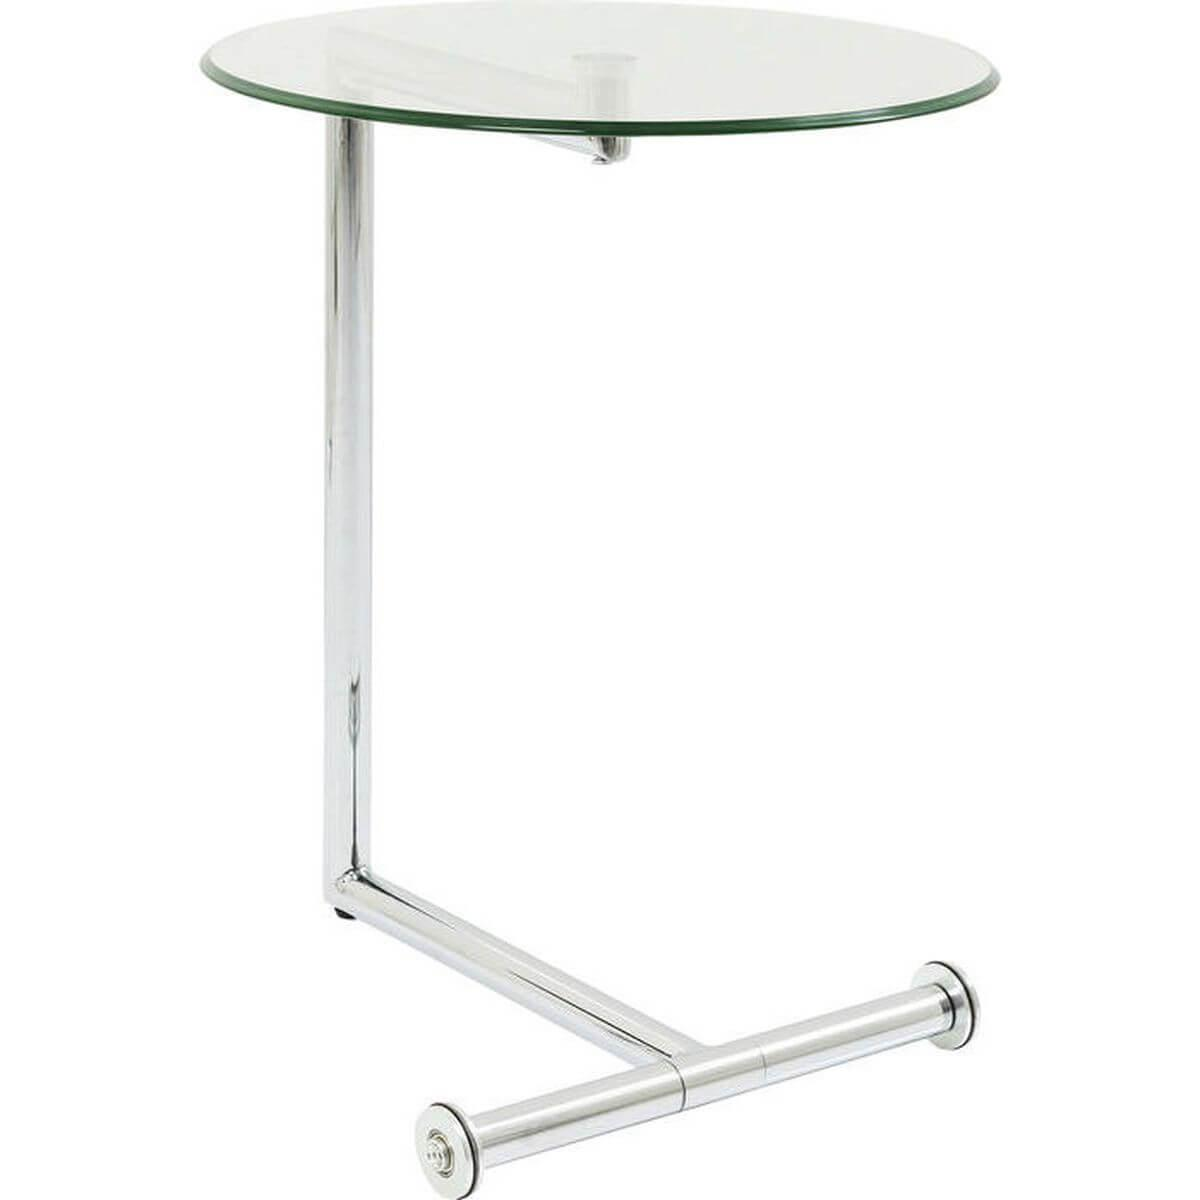 Table d'appoint EASY LIVING Kare Design